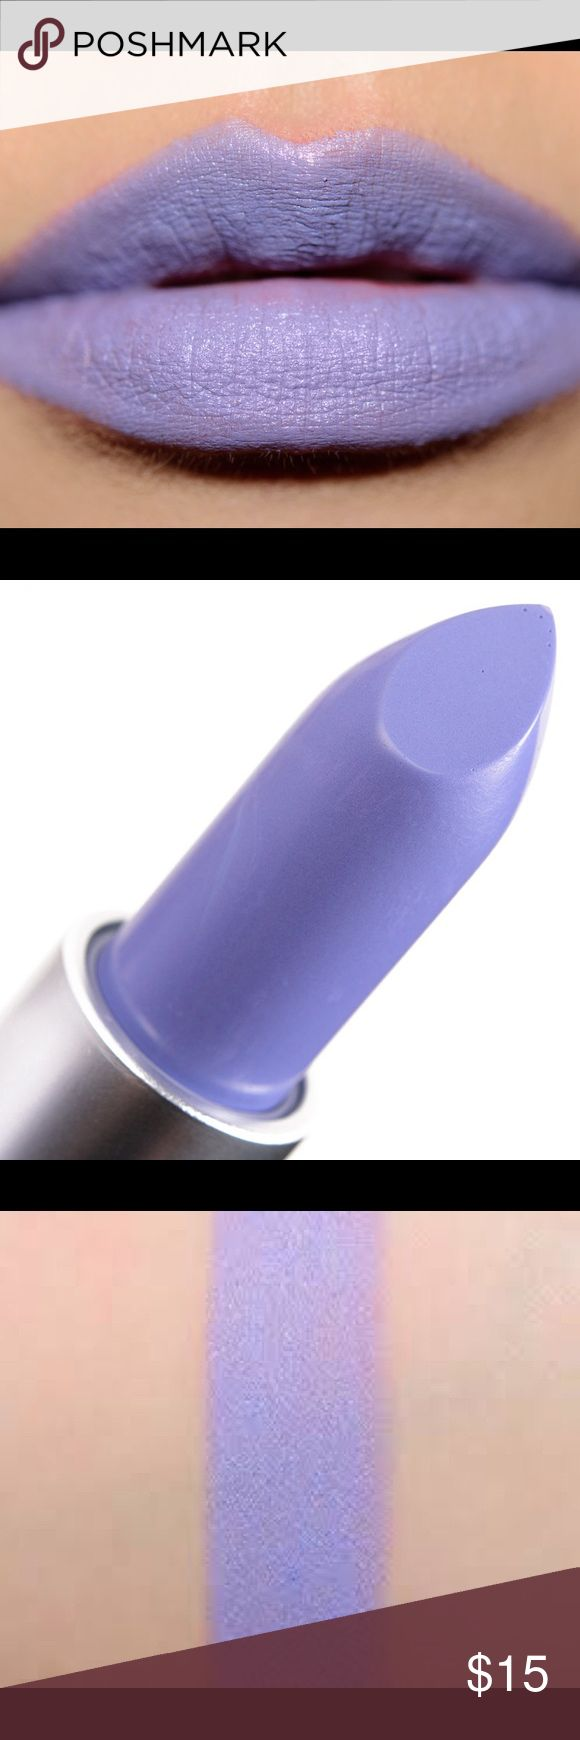 Mac Flatter Me Fierce Lipstick NIB Blue lavender purple Matte finish .new in box. I bought one, then my husband bought one. We couldn't return/exchange due to him being given the wrong receipt and mine was purchased at an airport location. MAC Cosmetics Makeup Lipstick